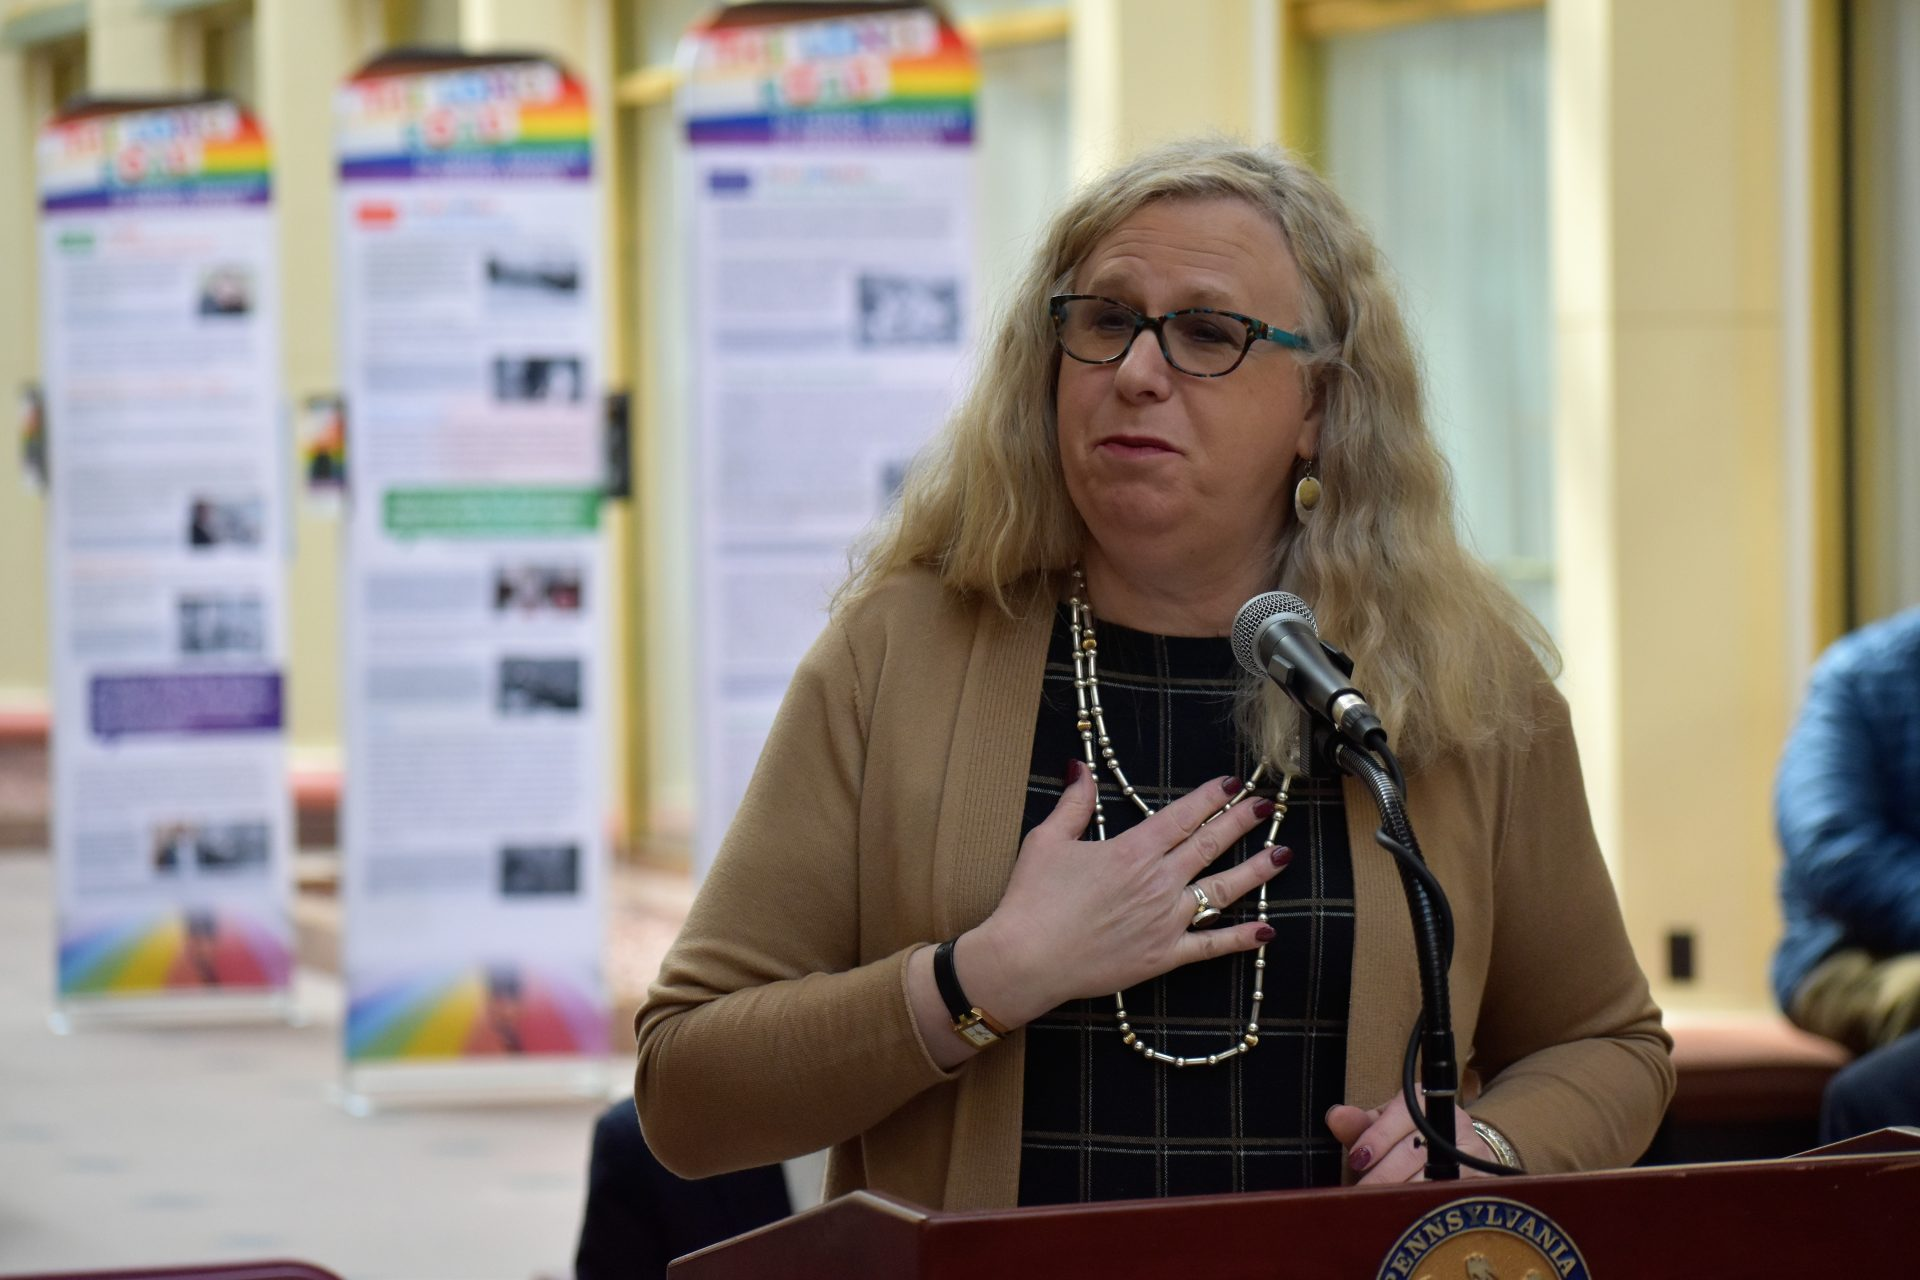 Dr. Rachel Levine speaks during a ceremony in the state Capitol on Monday, March 18, 2019.